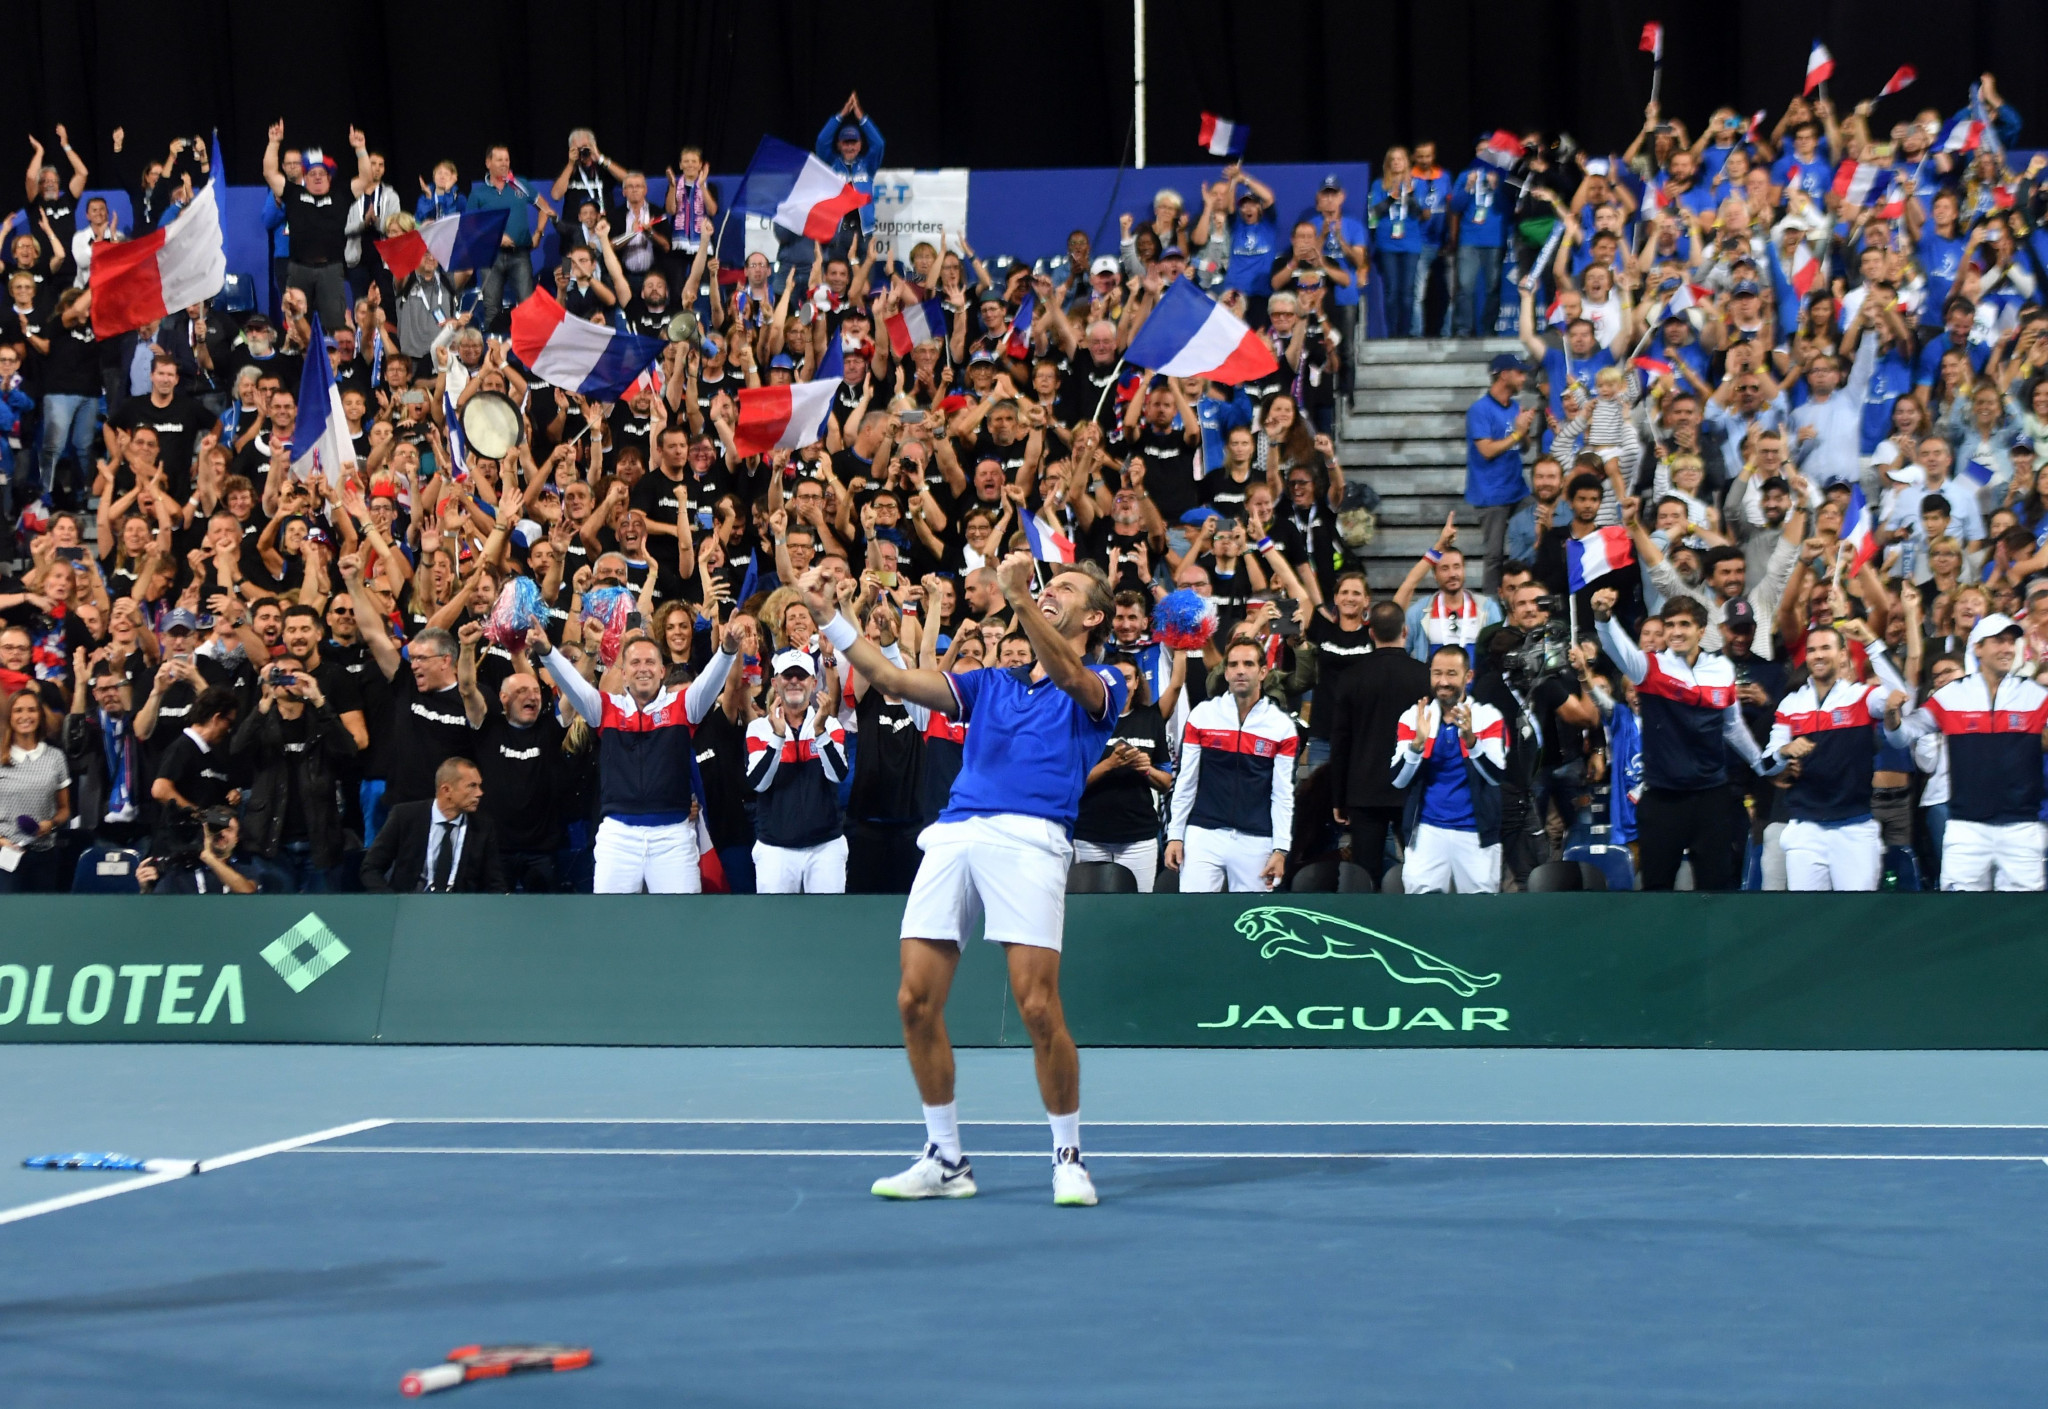 Davis Cup 2018: Benoit Paire to open for France against Spain